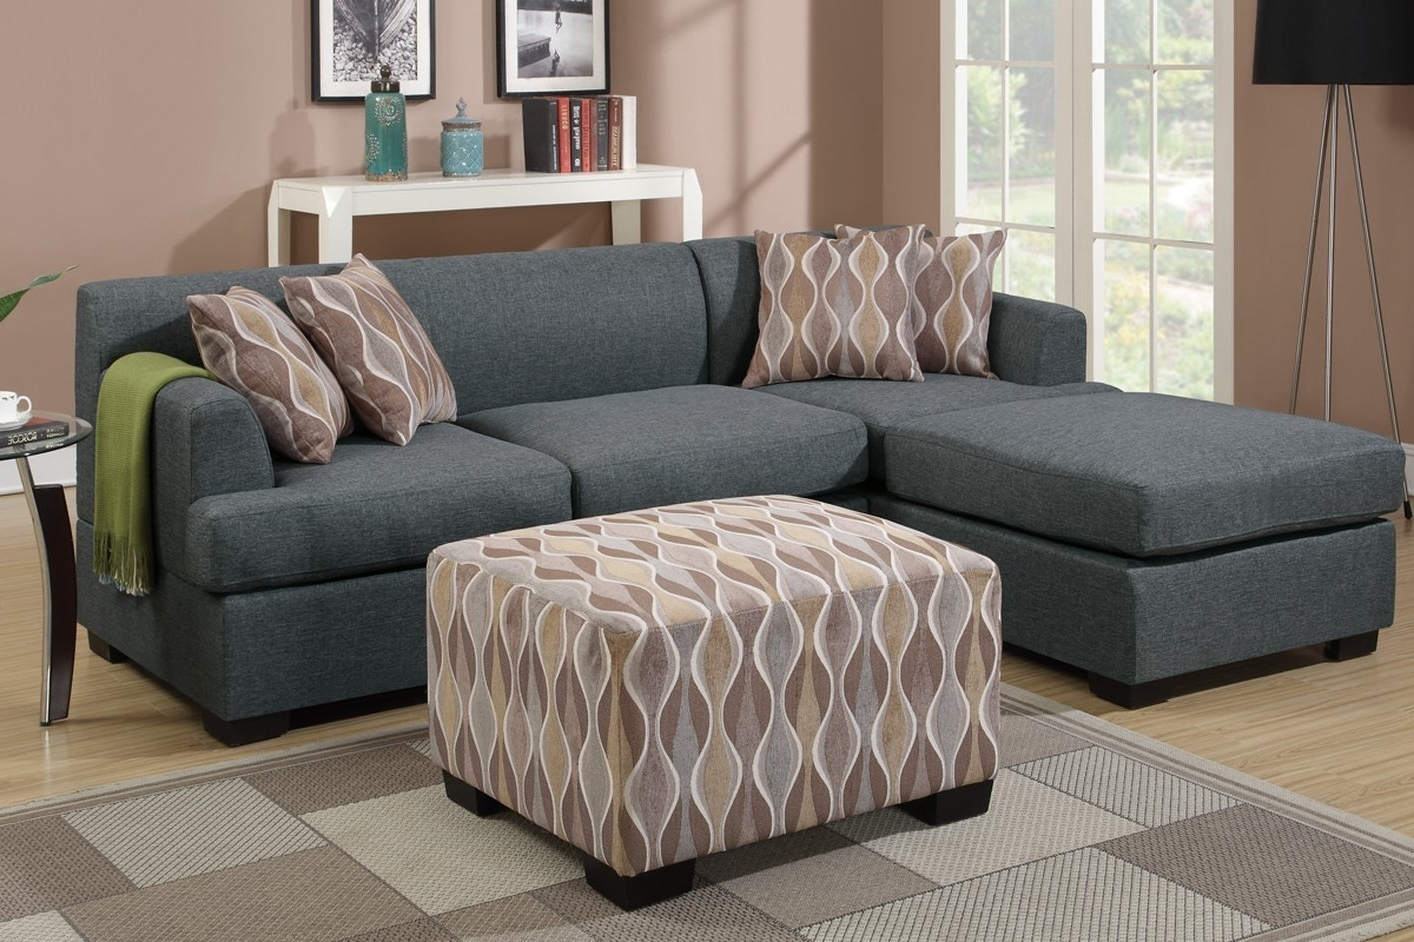 Grey Fabric Chaise Lounge – Steal A Sofa Furniture Outlet Los With Regard To Newest Fabric Chaise Lounges (View 11 of 15)